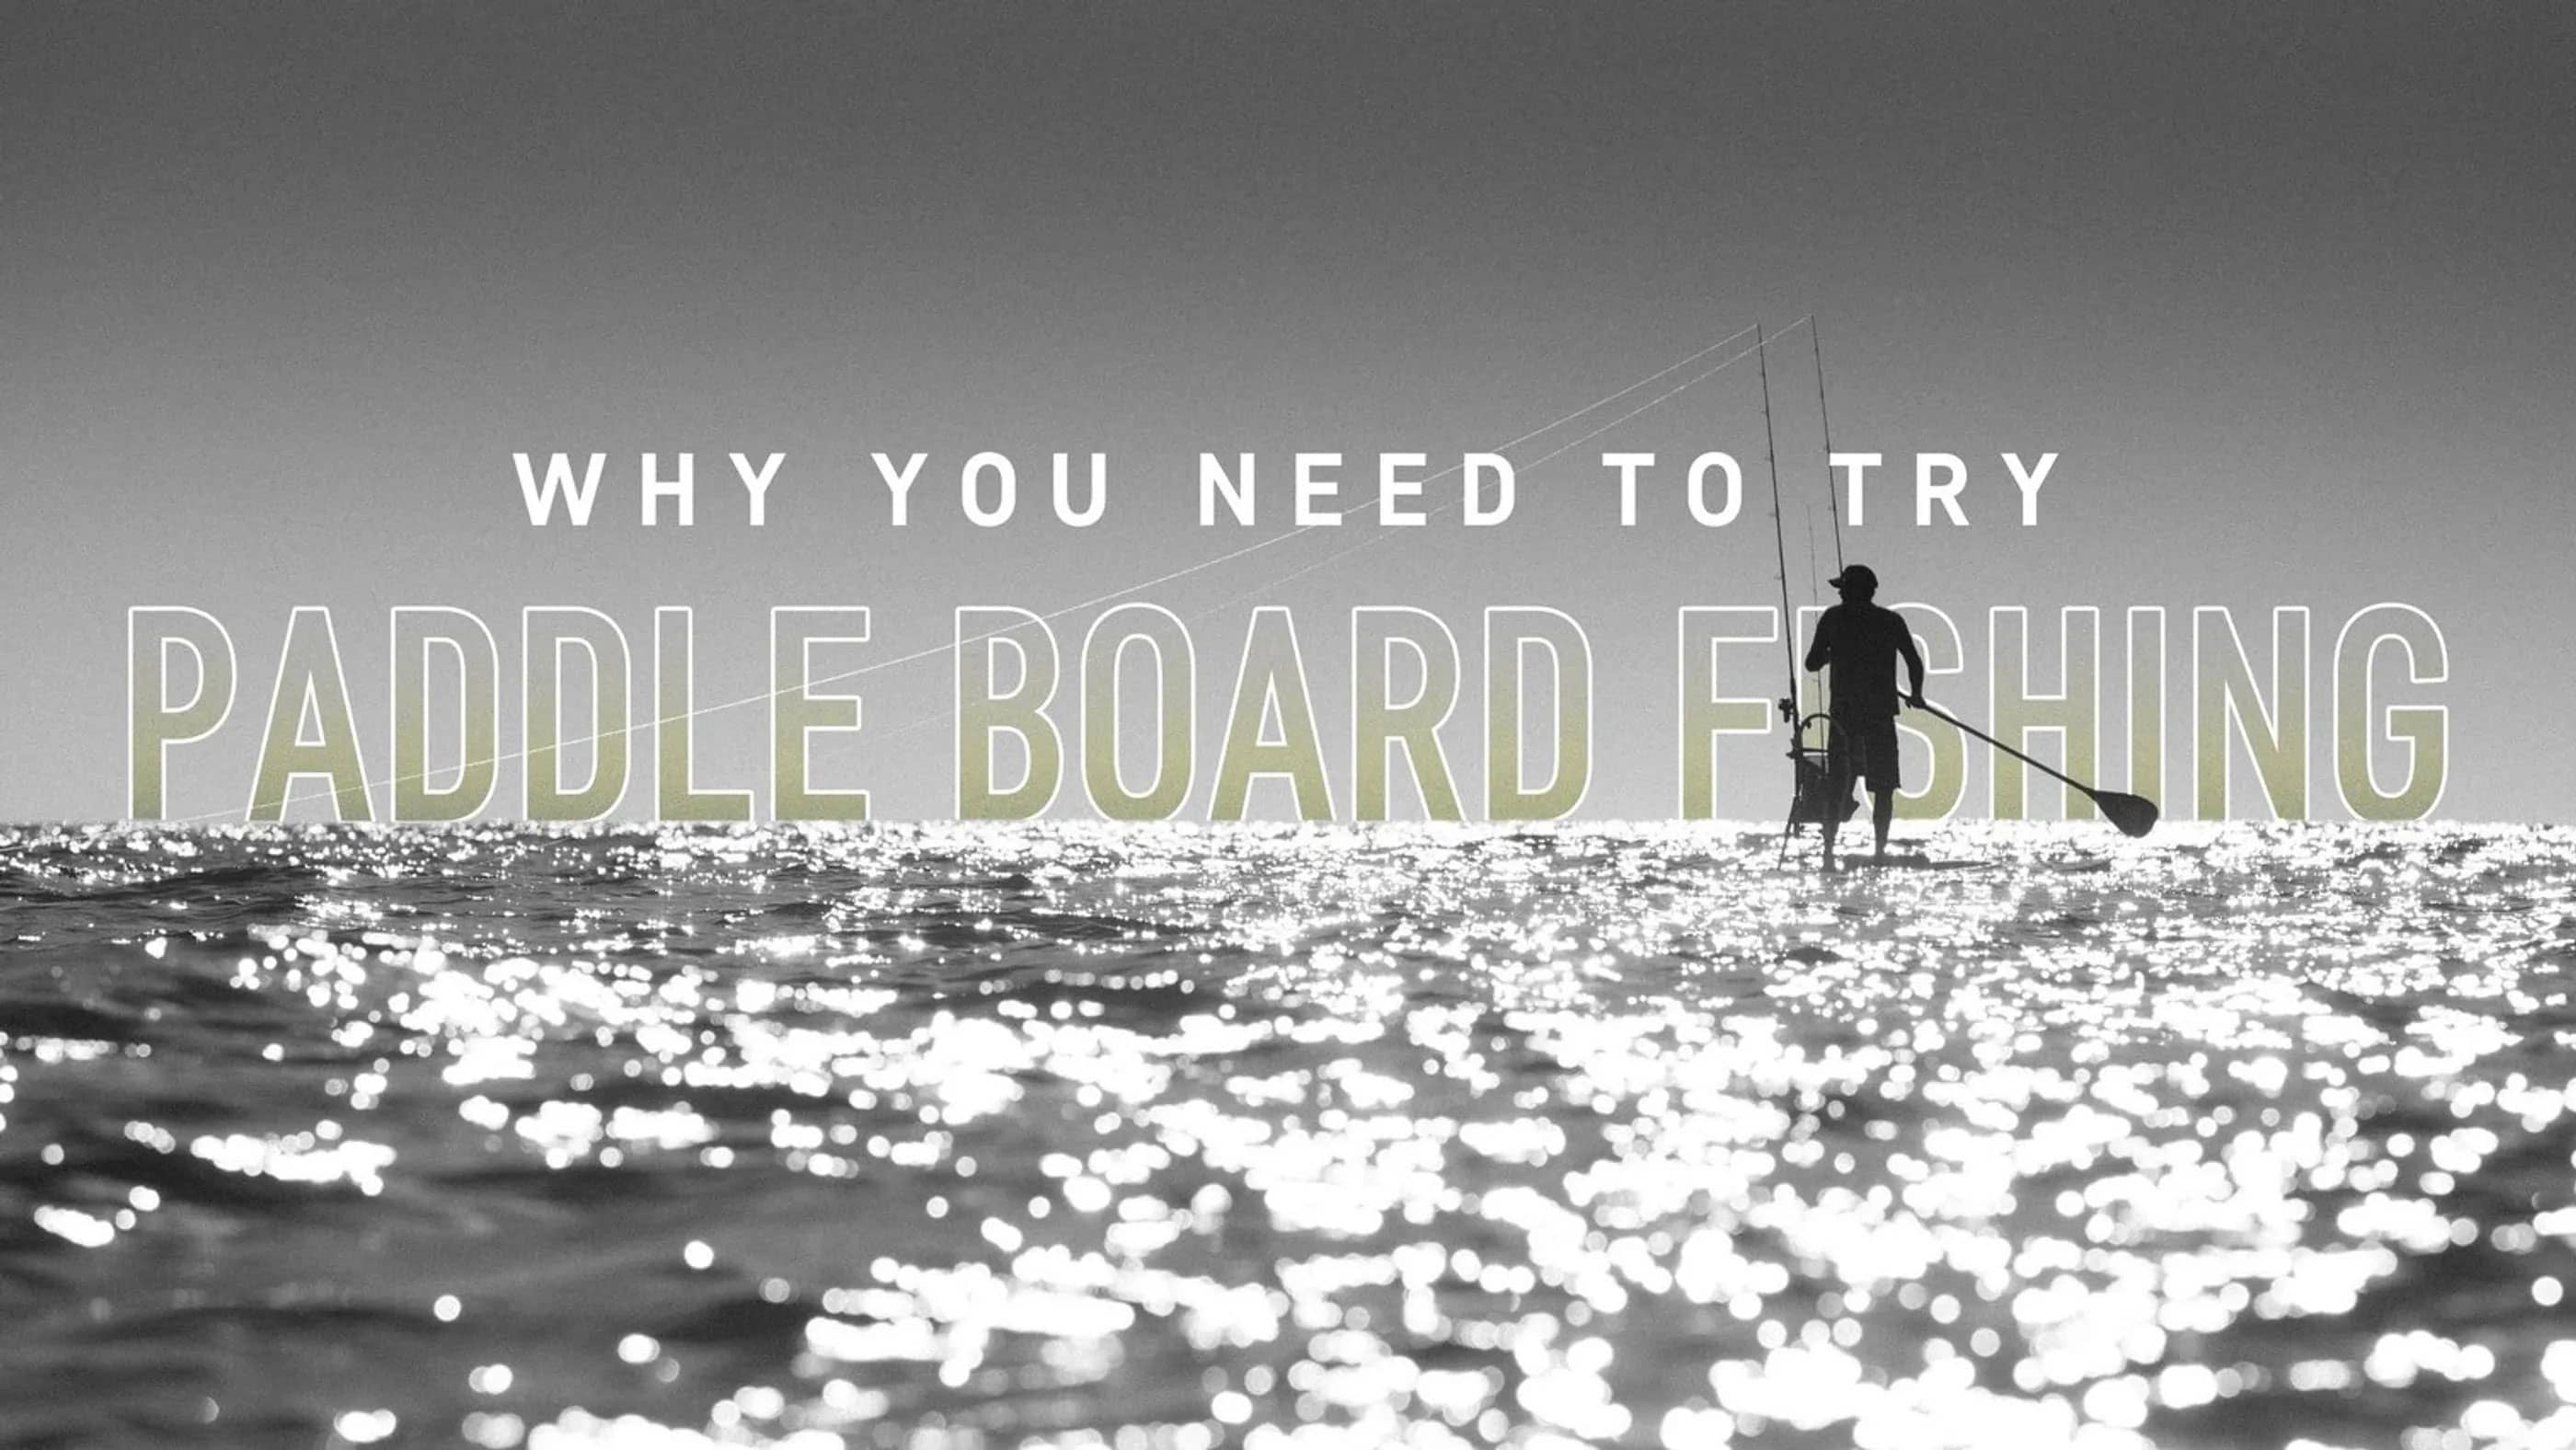 Why You Need to Try Paddle Board Fishing